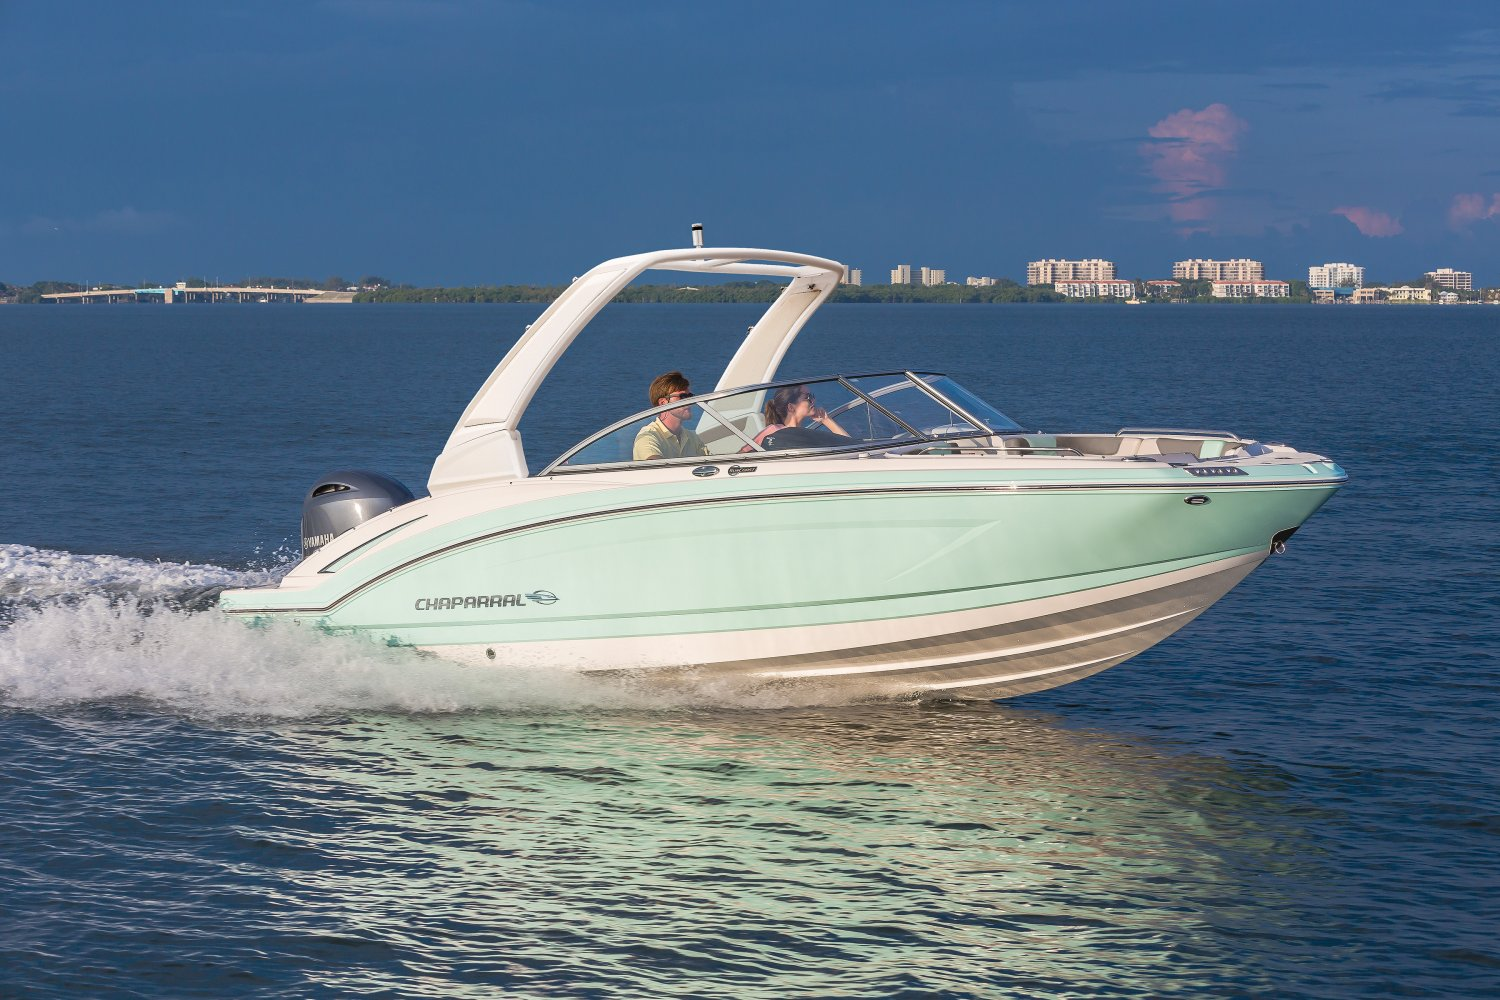 Couple cruises on the water in a Chaparral Suncoast 230 deck boat.